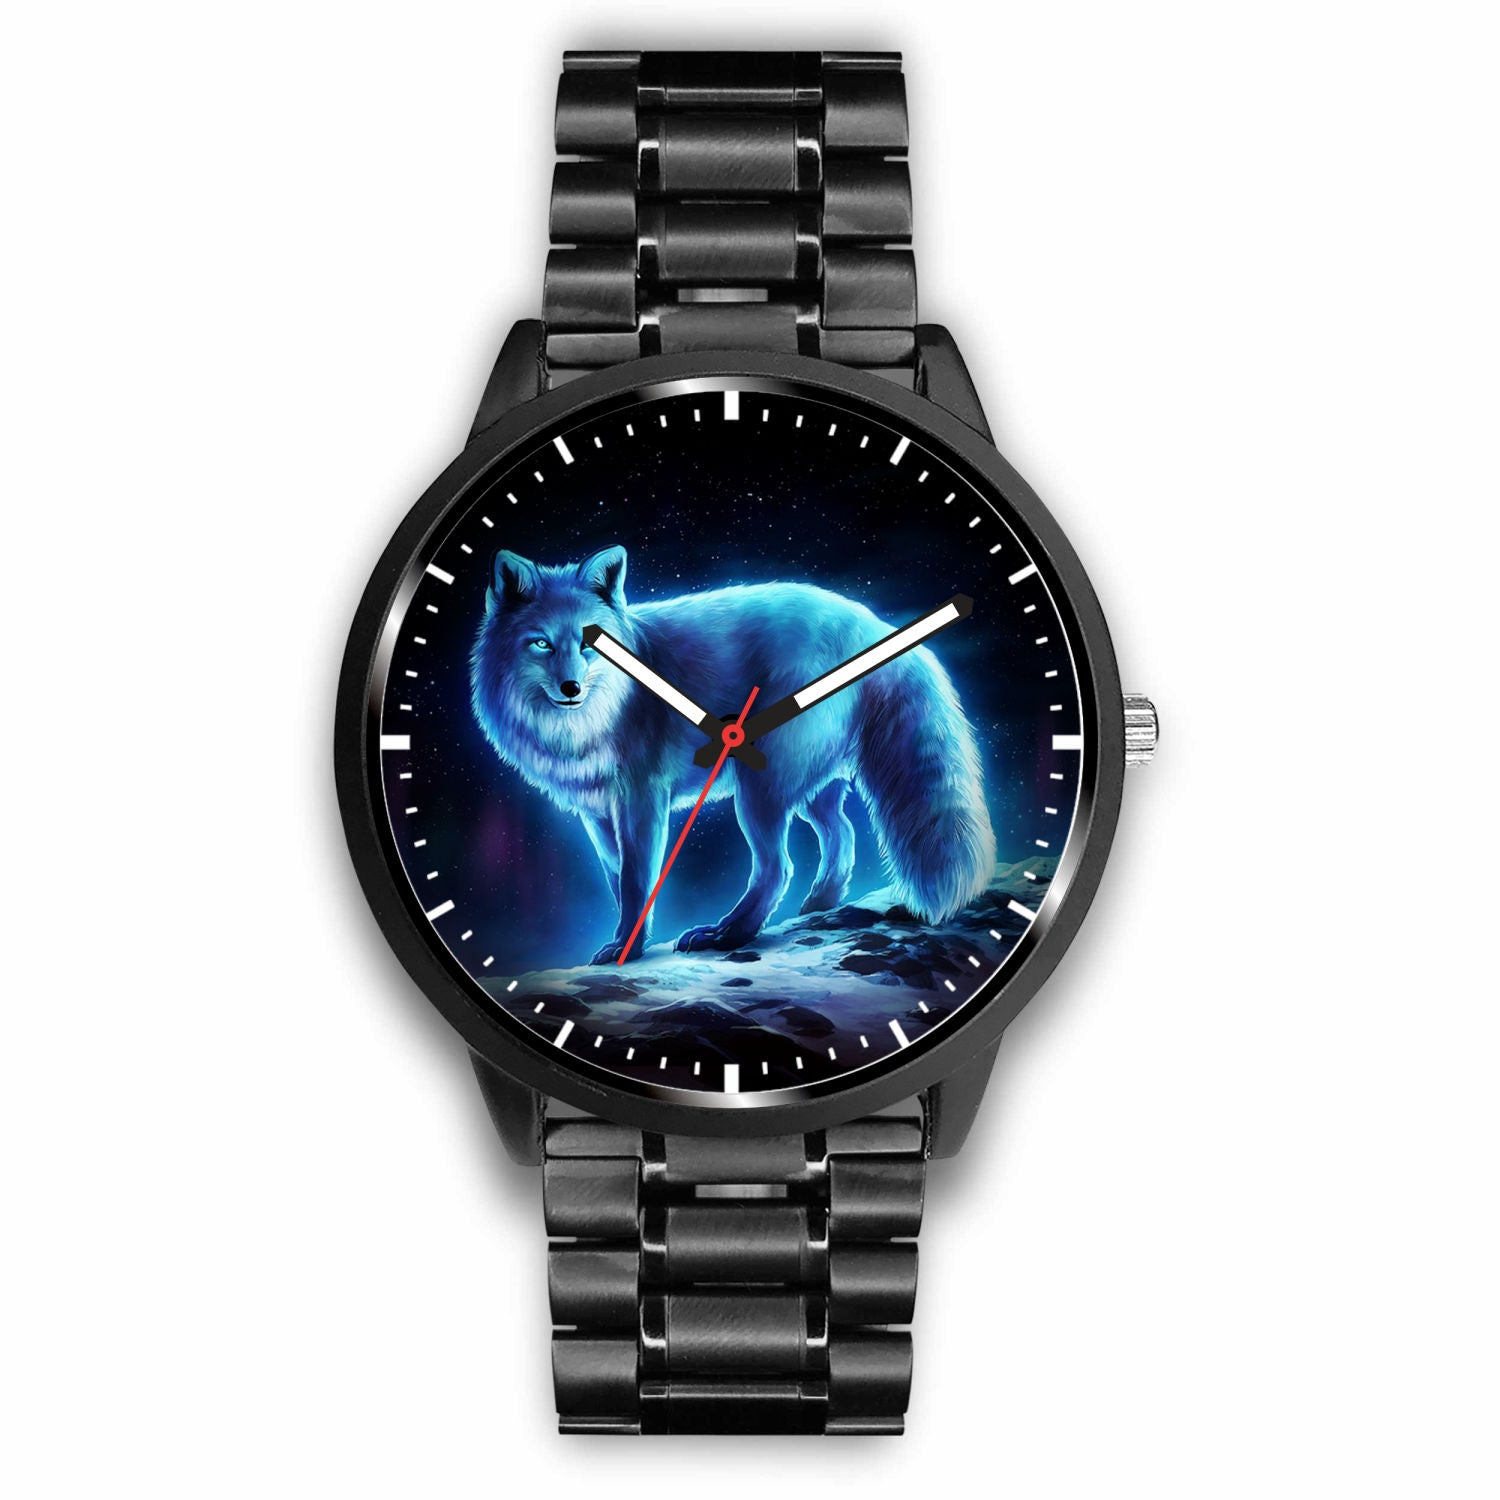 3D Blue Light Wolf Watch - Stainless steel back with leather/ stainless steel band 004